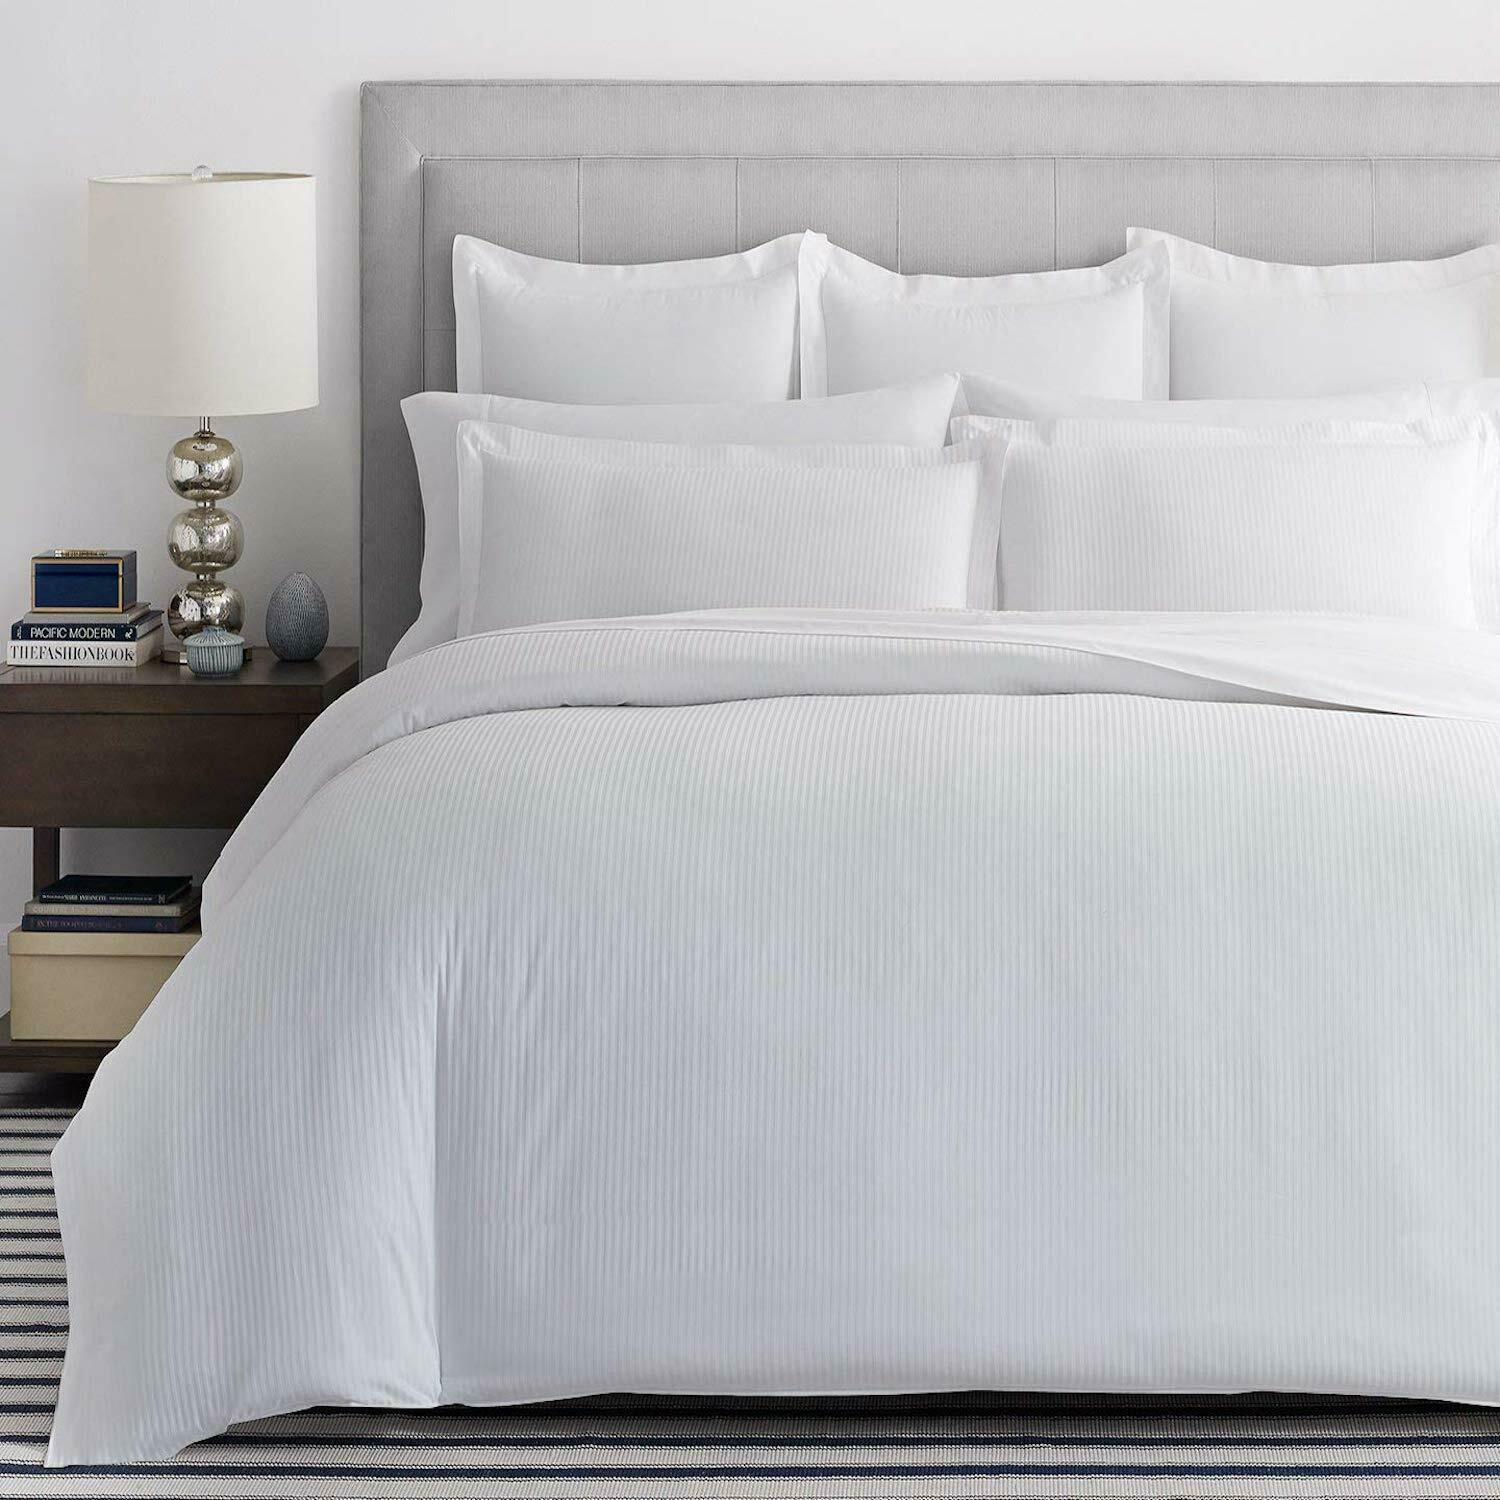 EGYPTIAN COTTON 800 THREAD COUNT STRIPE Weiß KING Größe DUVET COVER